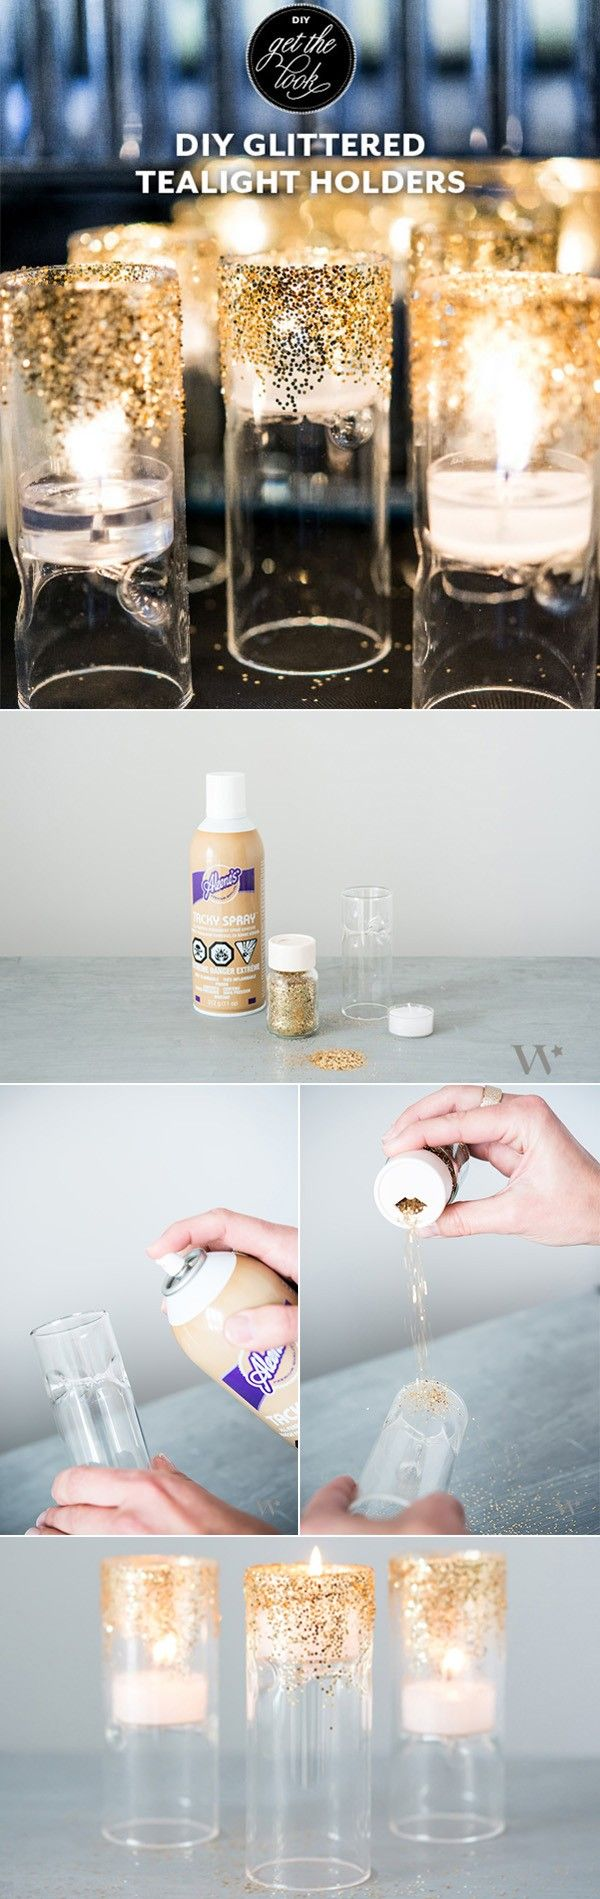 diy glitter wedding centerpieces candle holders #diywedding #diyweddingideas #weddingdecor